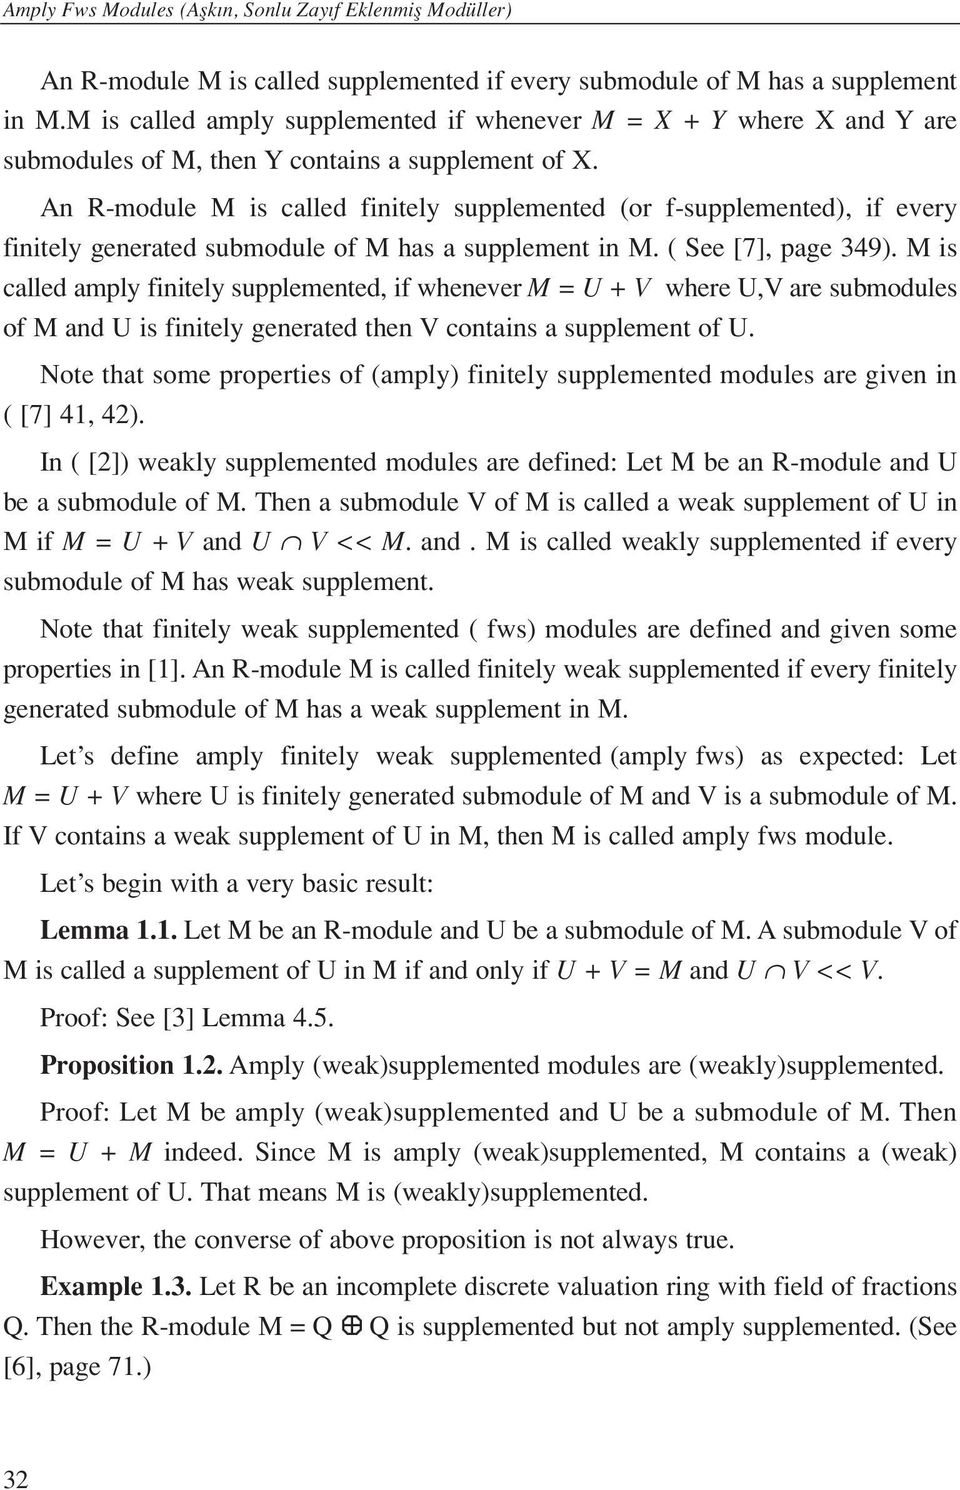 An R-module M is called finitely supplemented (or f-supplemented), if every finitely generated submodule of M has a supplement in M. ( See [7], page 349).